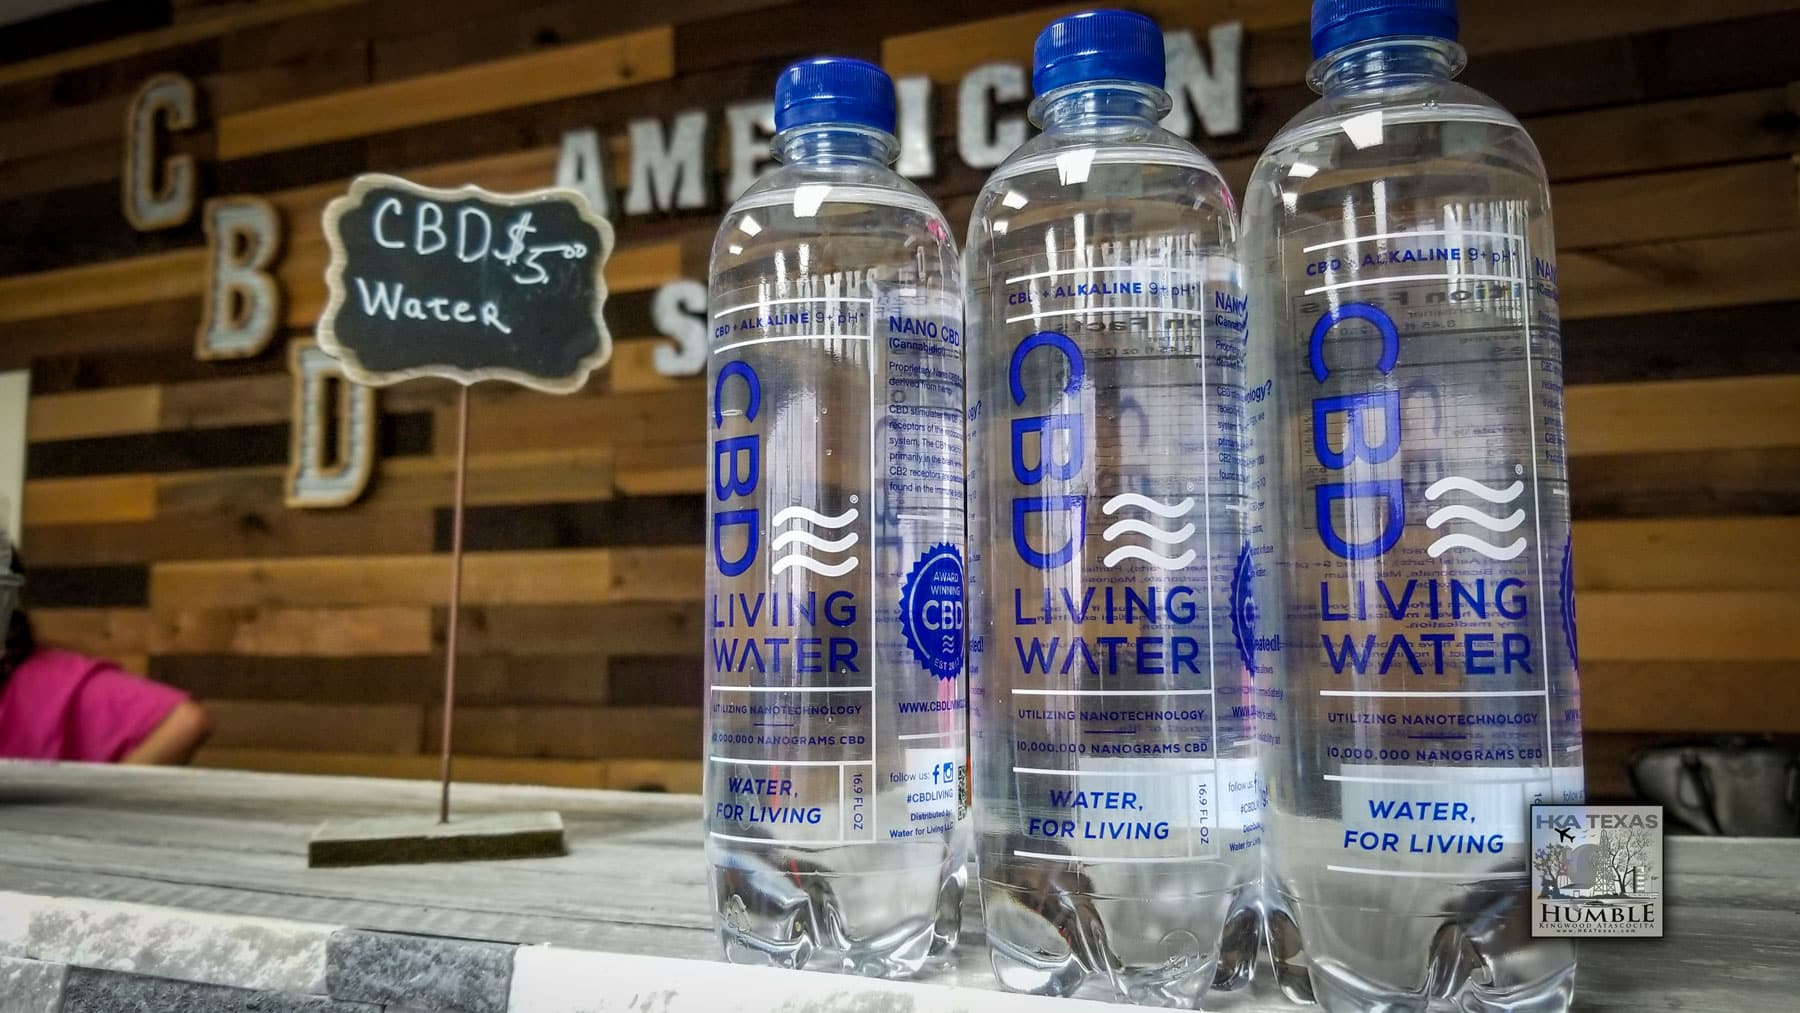 CBD water in Humble, Texas